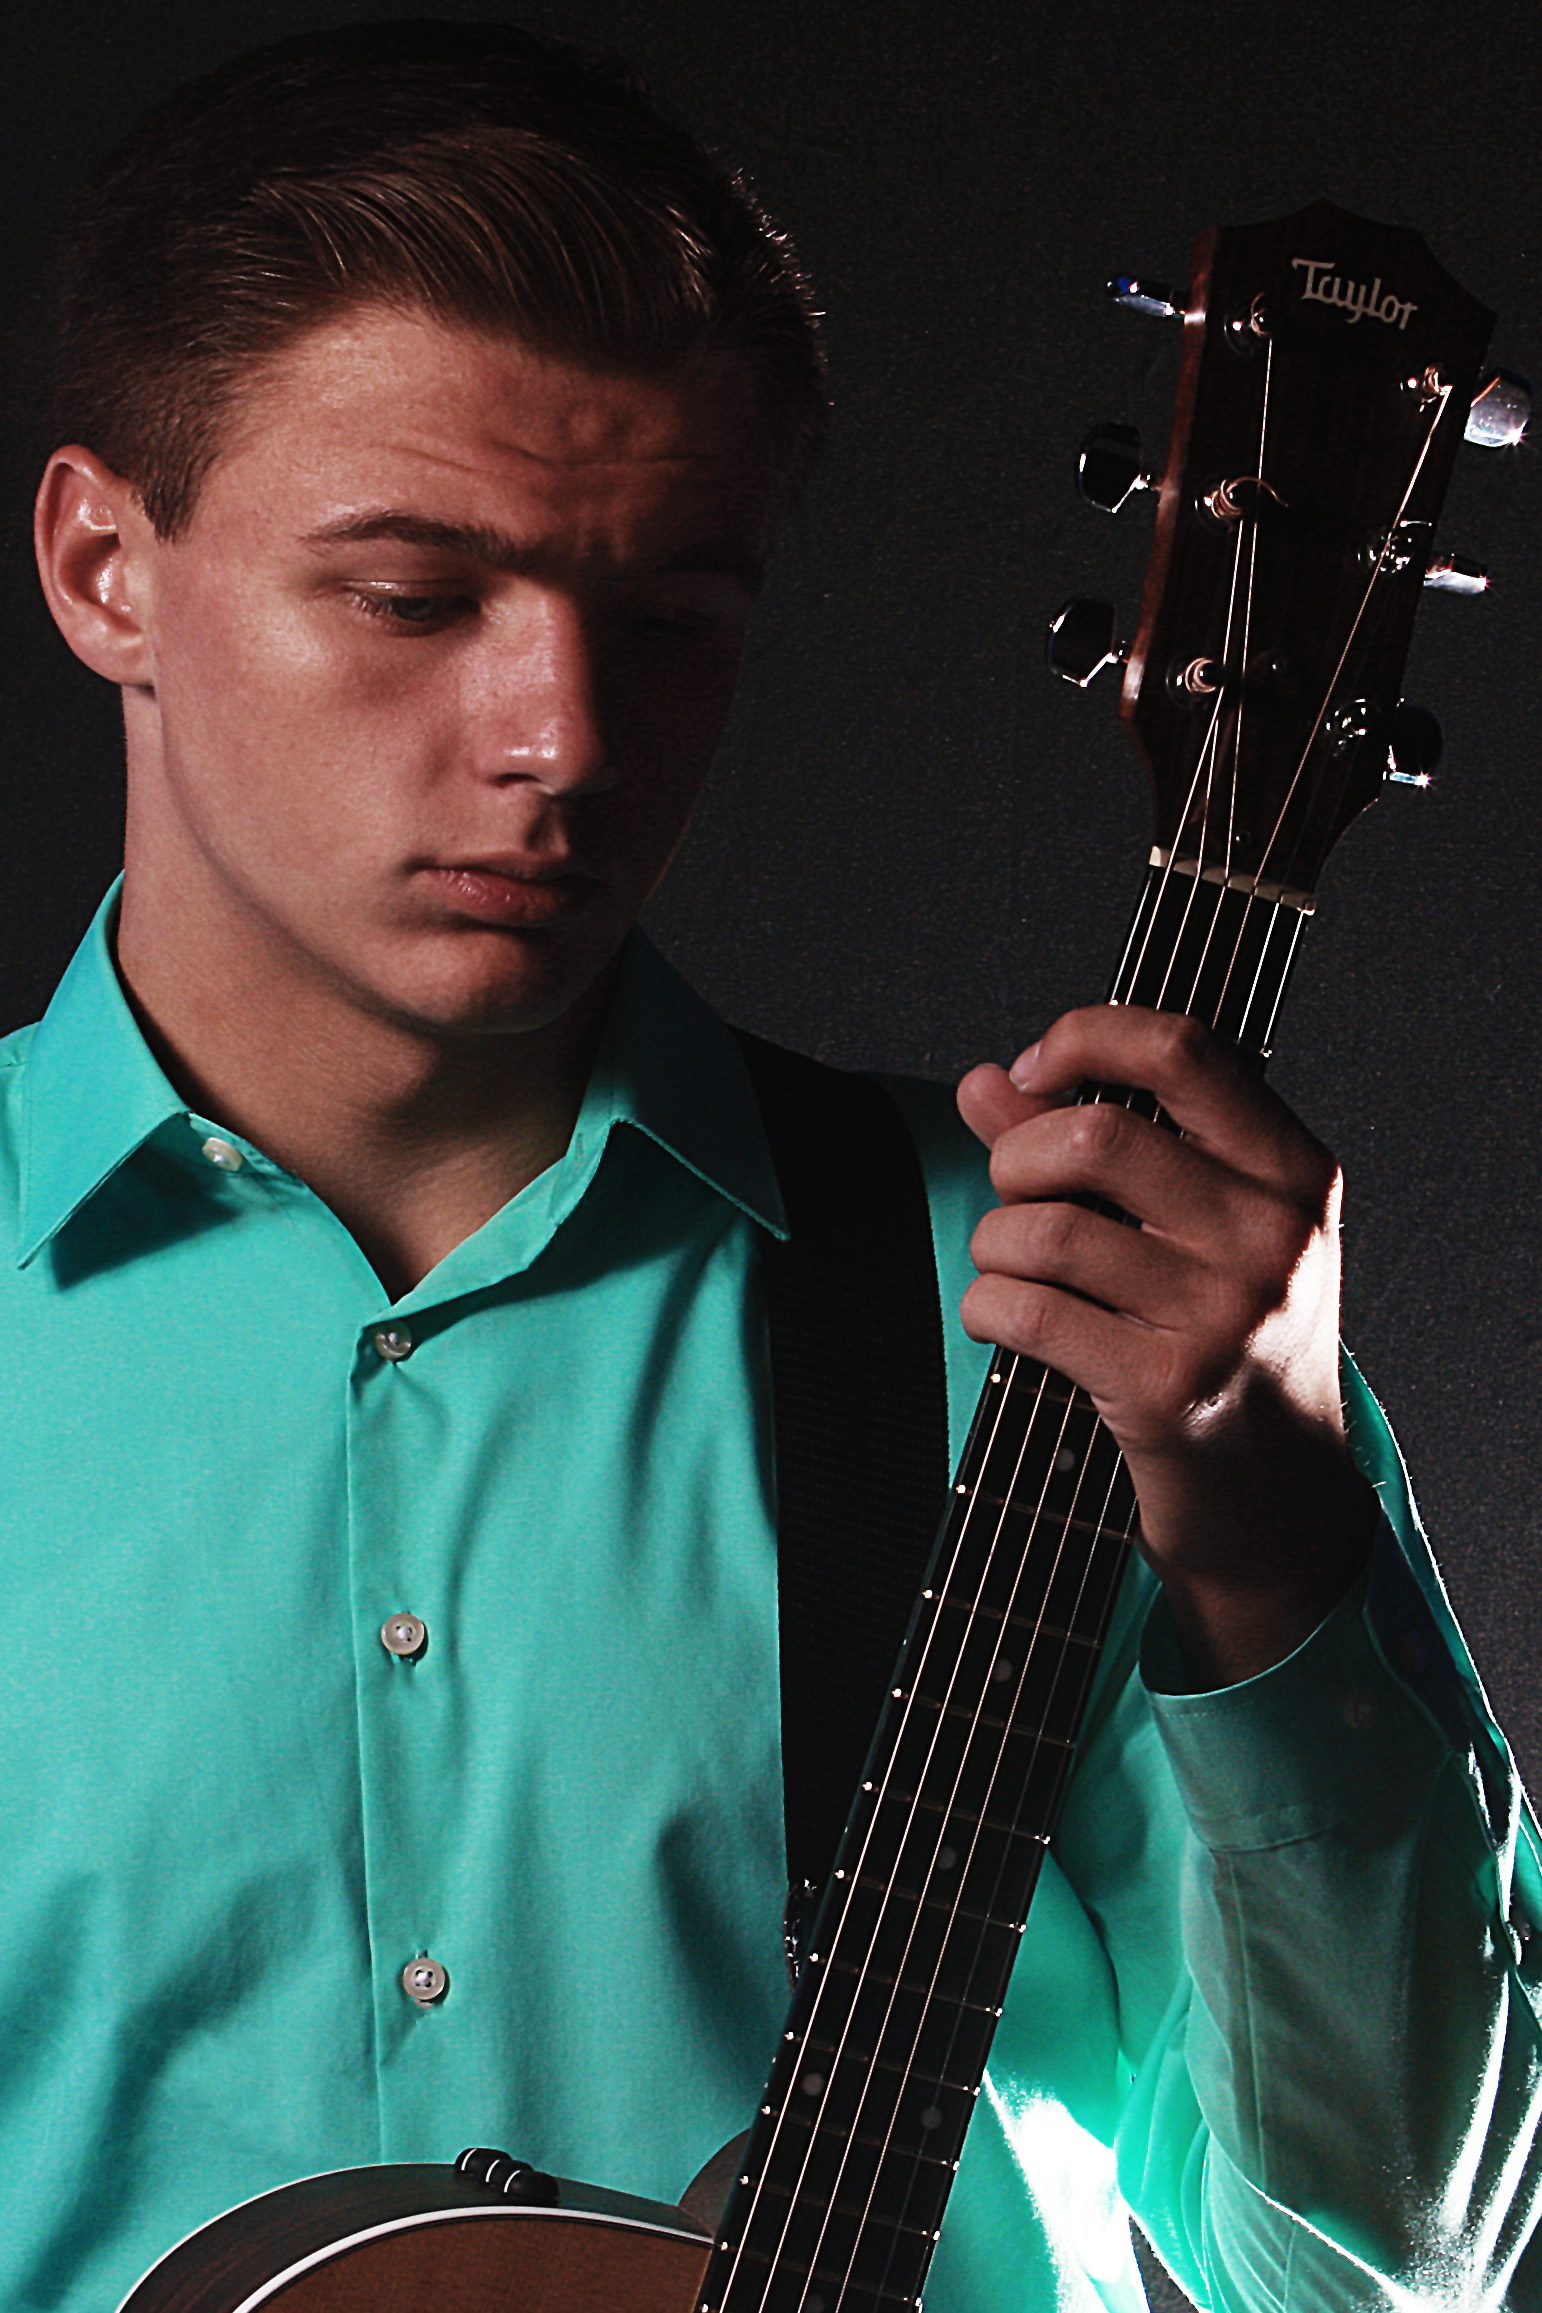 Bailey Williams posing with his guitar